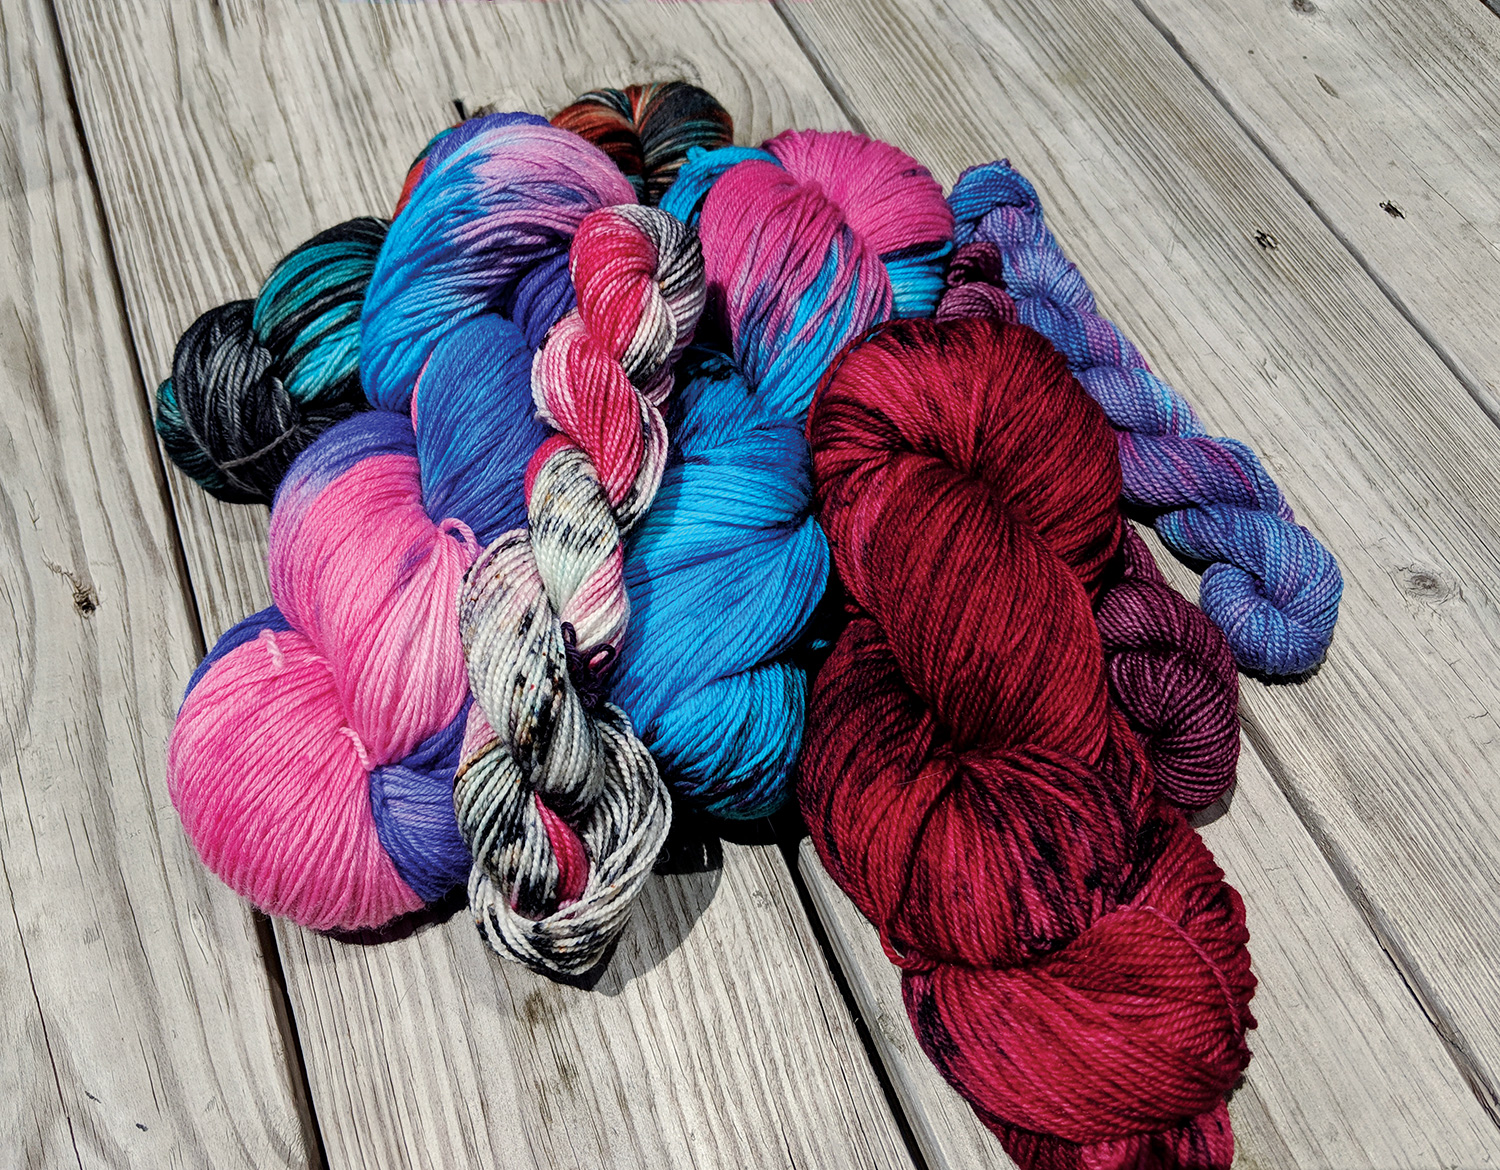 Dyed yarn by Abbey Schuyler @abbeyschuyler